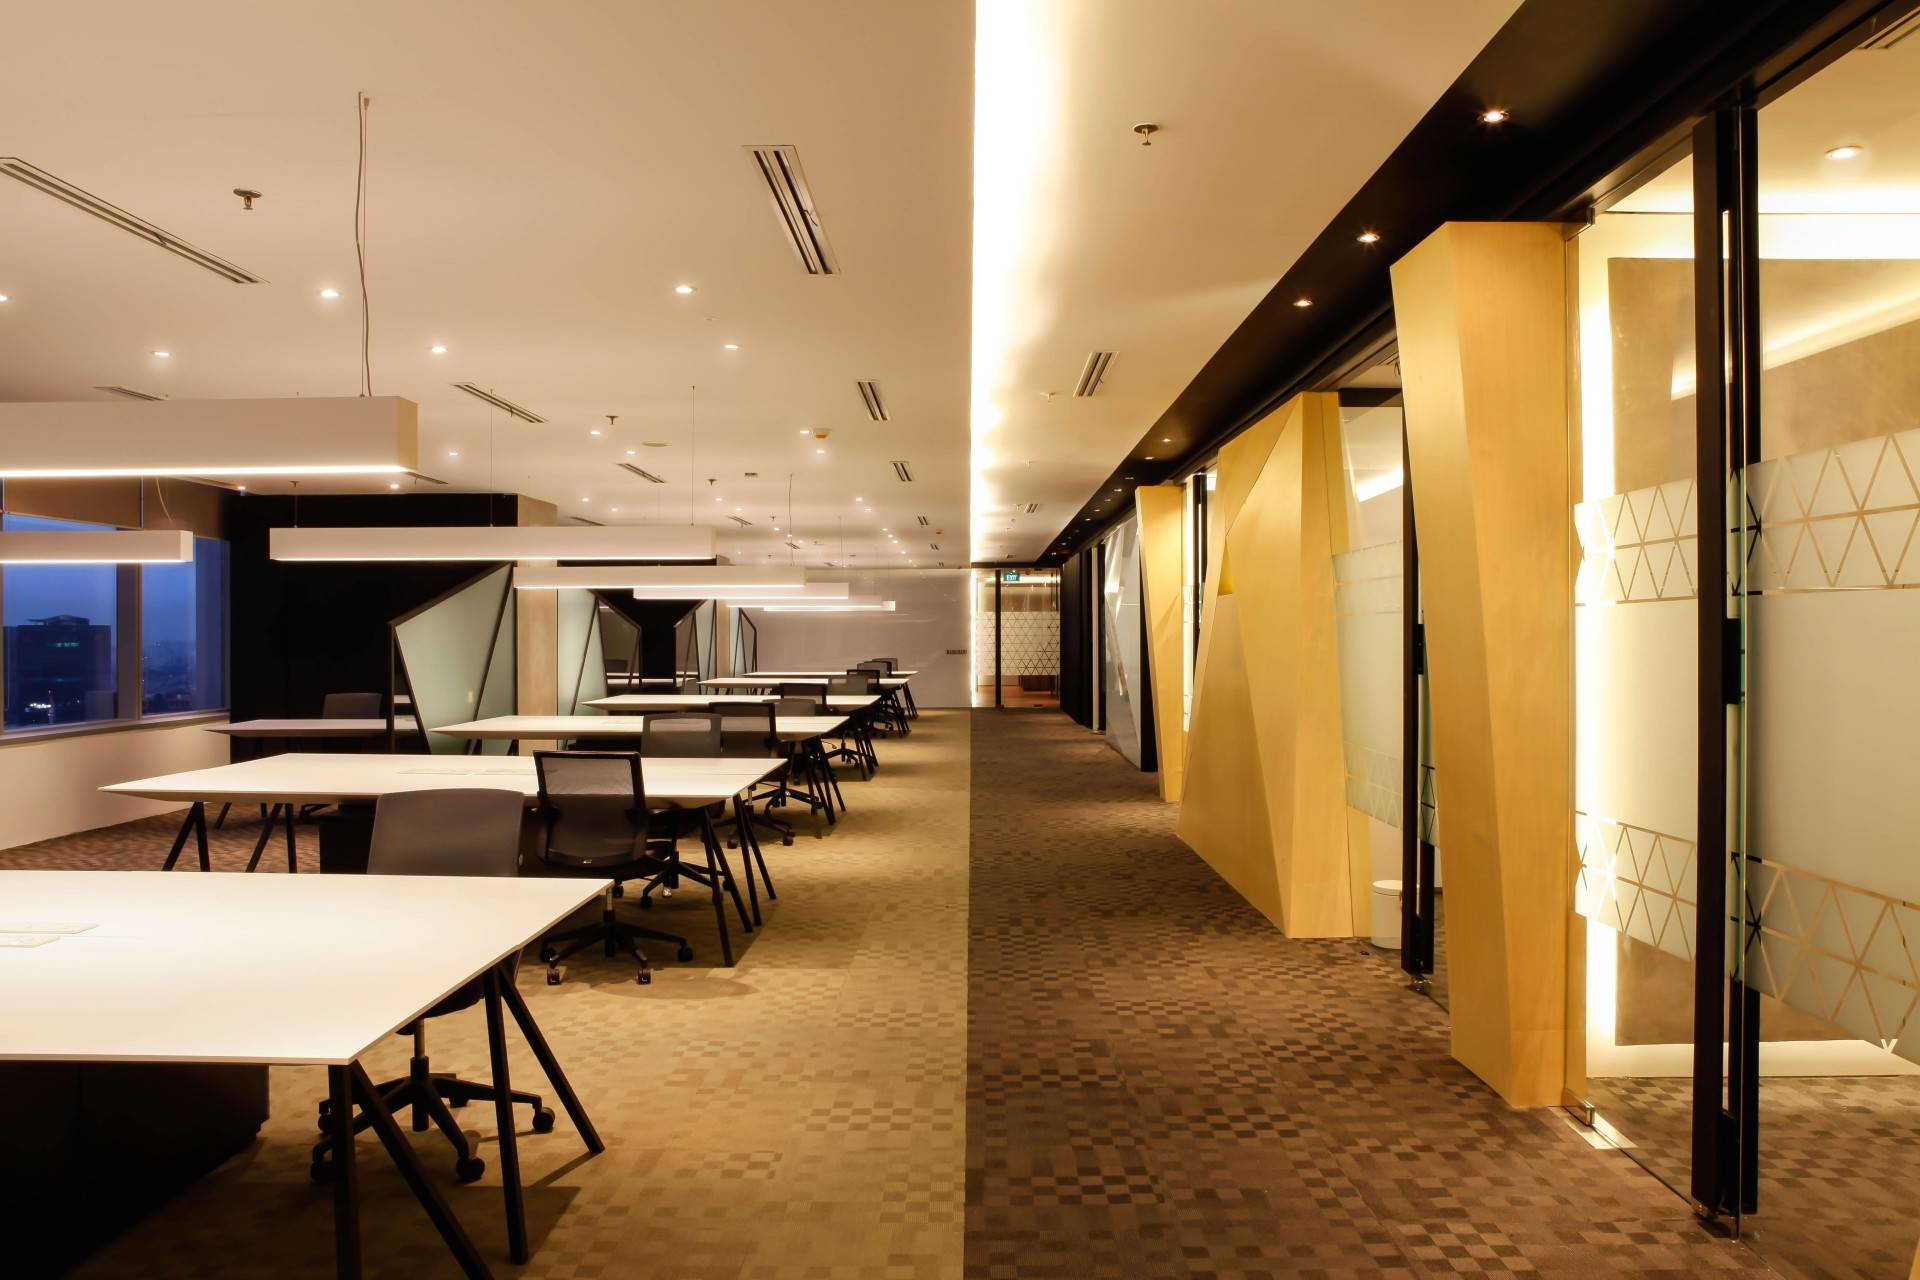 Design Intervention Antam Niterra Haltim Office At Dbs Tower Kuningan Jakarta, Indonesia Jakarta, Indonesia Workspace Minimalis,modern,glass  2608